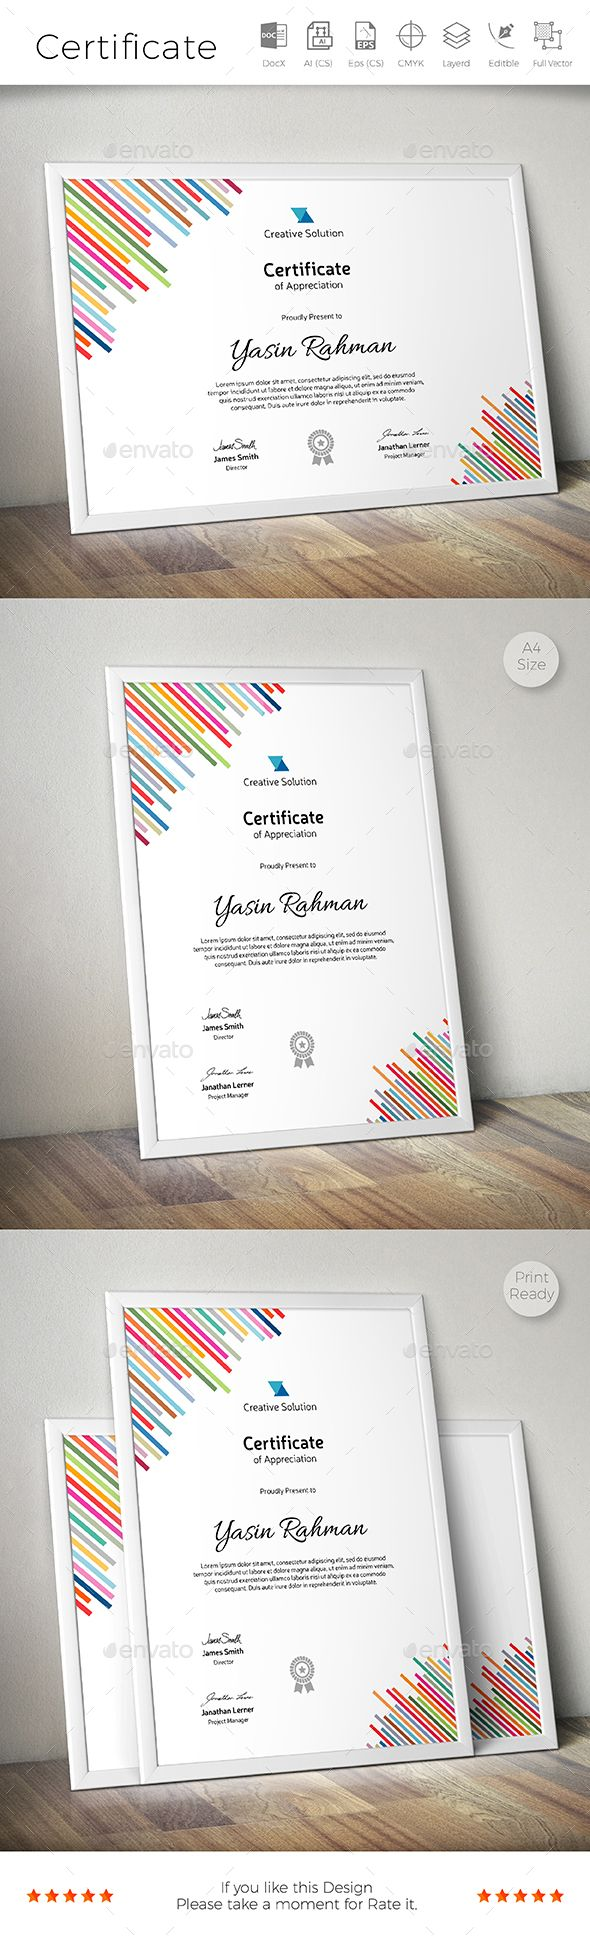 18 best сертификат images on Pinterest | Certificate templates ...